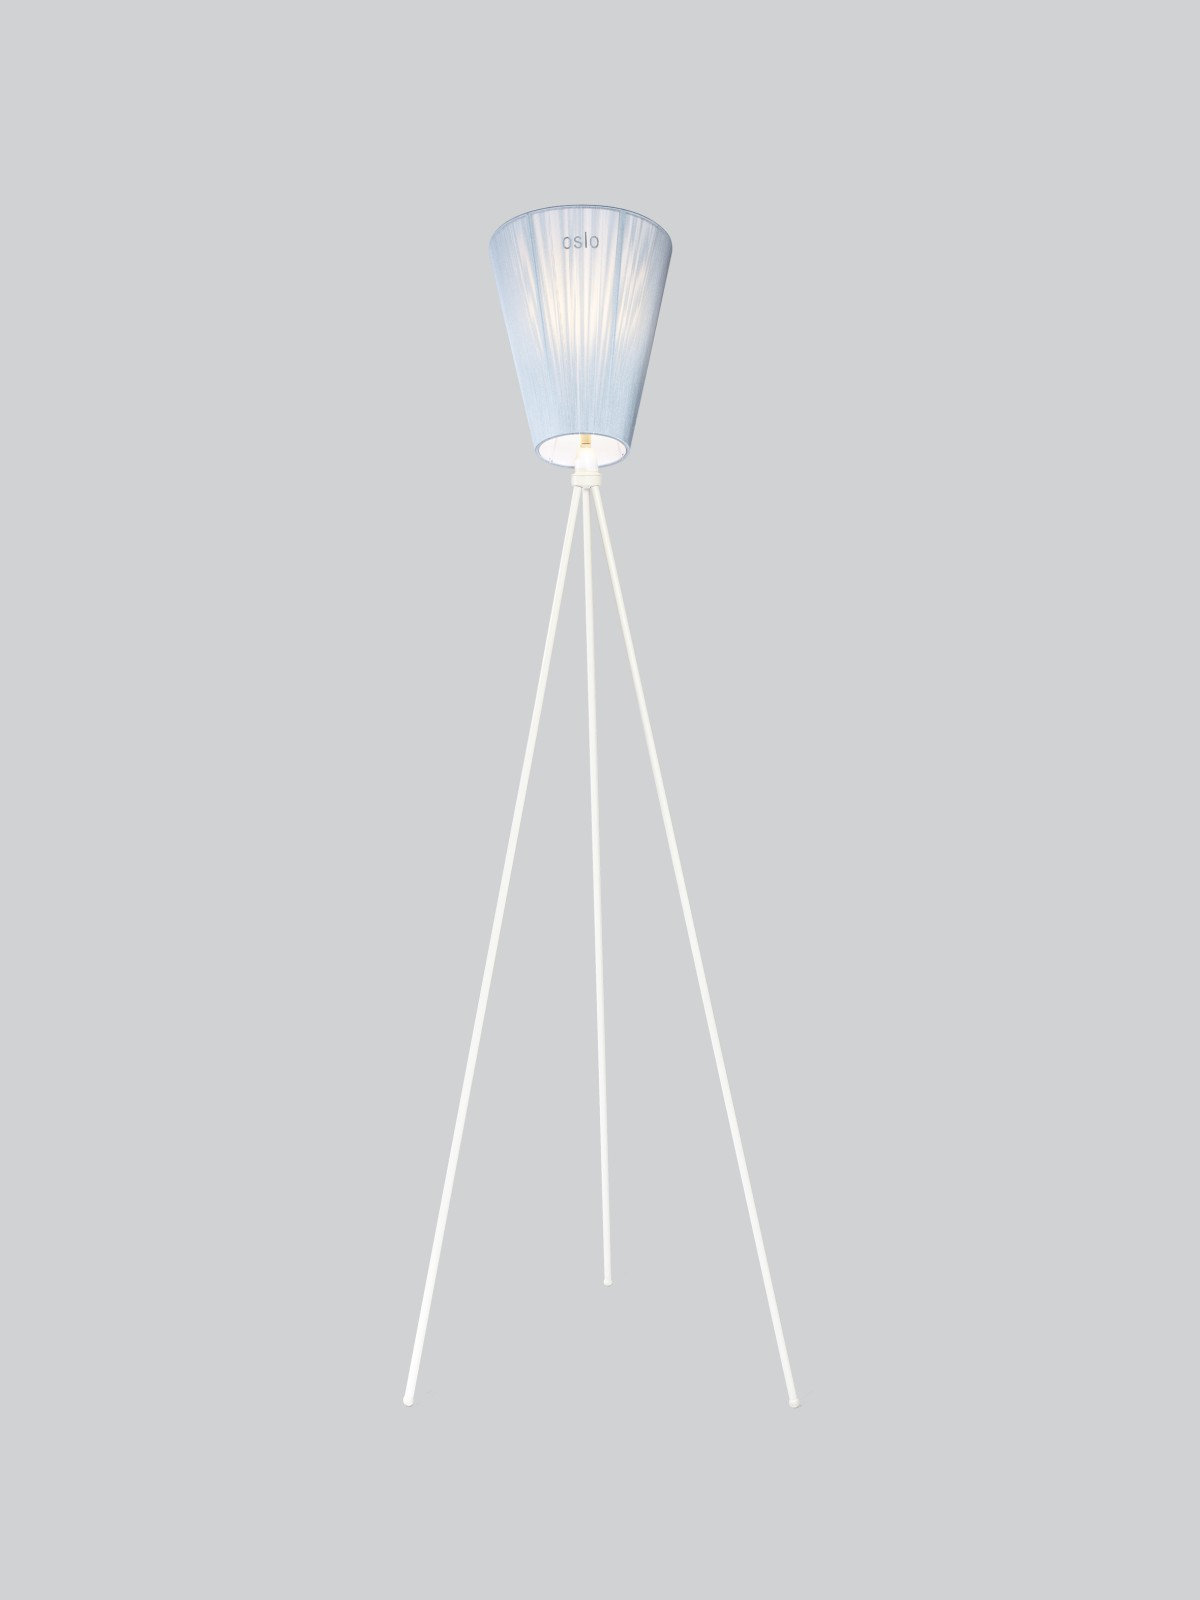 Oslo Wood Floor Lamp Light Blue Shade, White Body